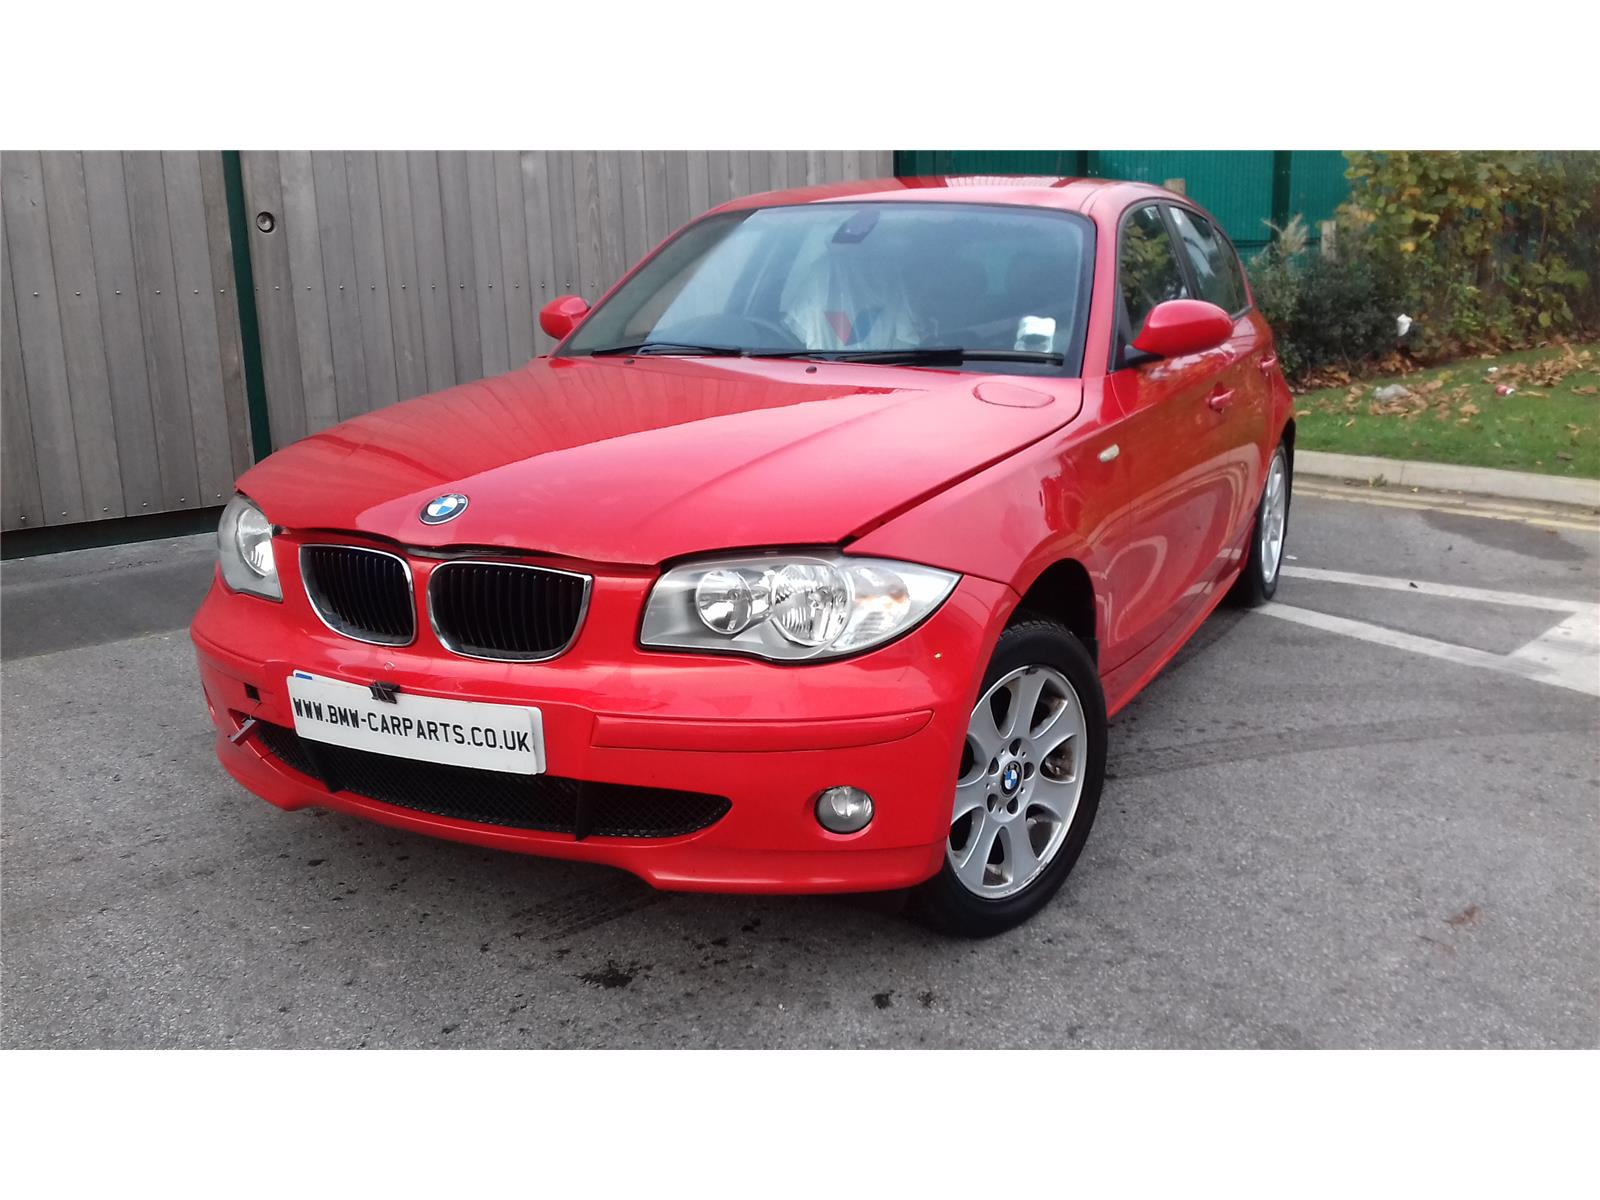 2005 bmw 1 series 120d se 5 door hatchback diesel manual breaking for used and spare parts. Black Bedroom Furniture Sets. Home Design Ideas